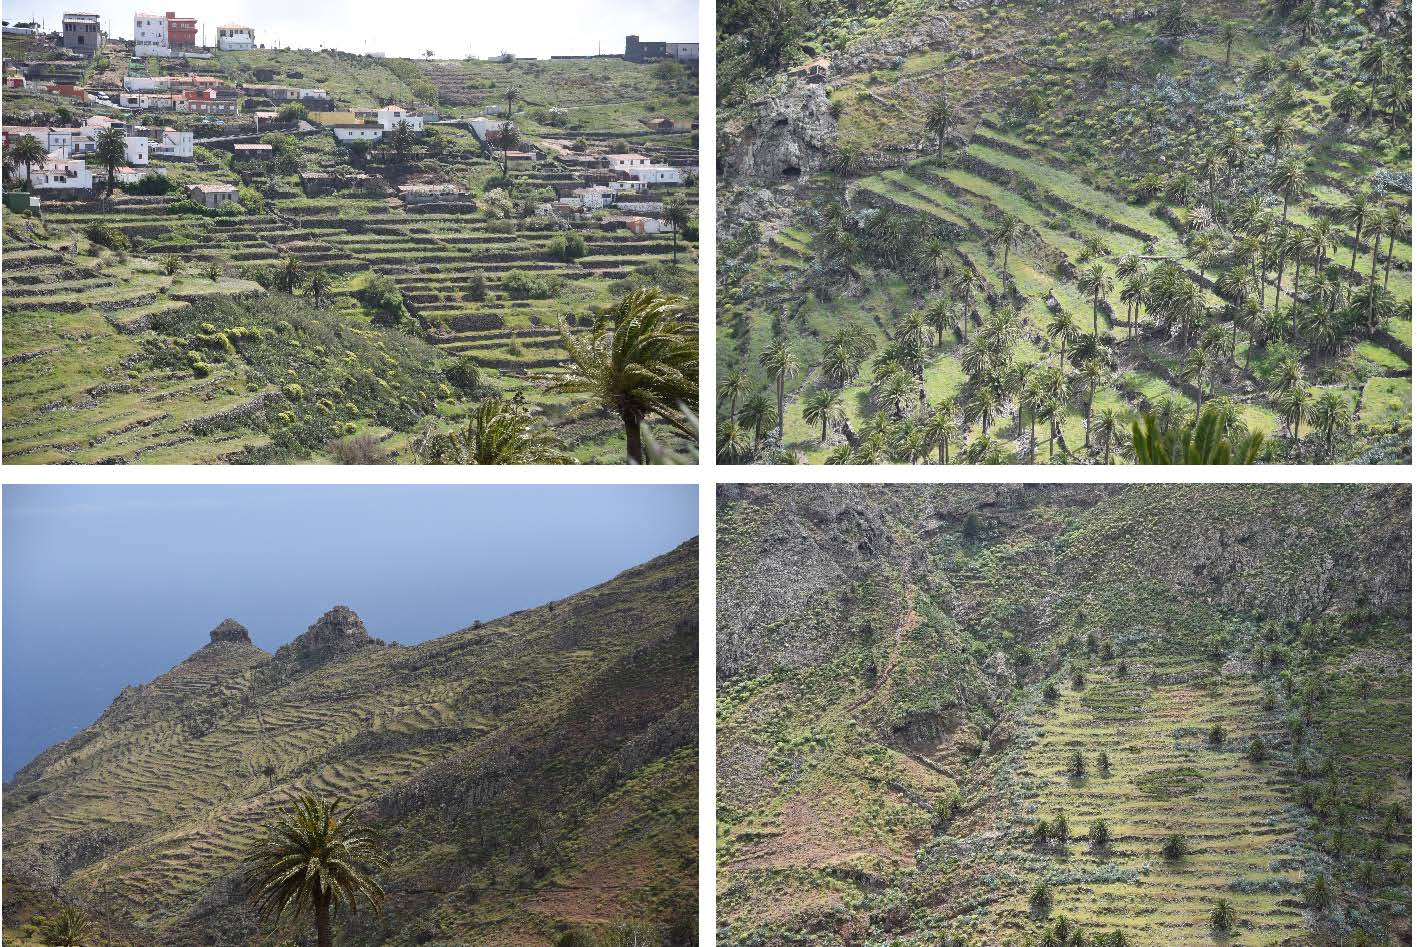 Pictures 9–12: Views of rich in terraces La Gomera Island.